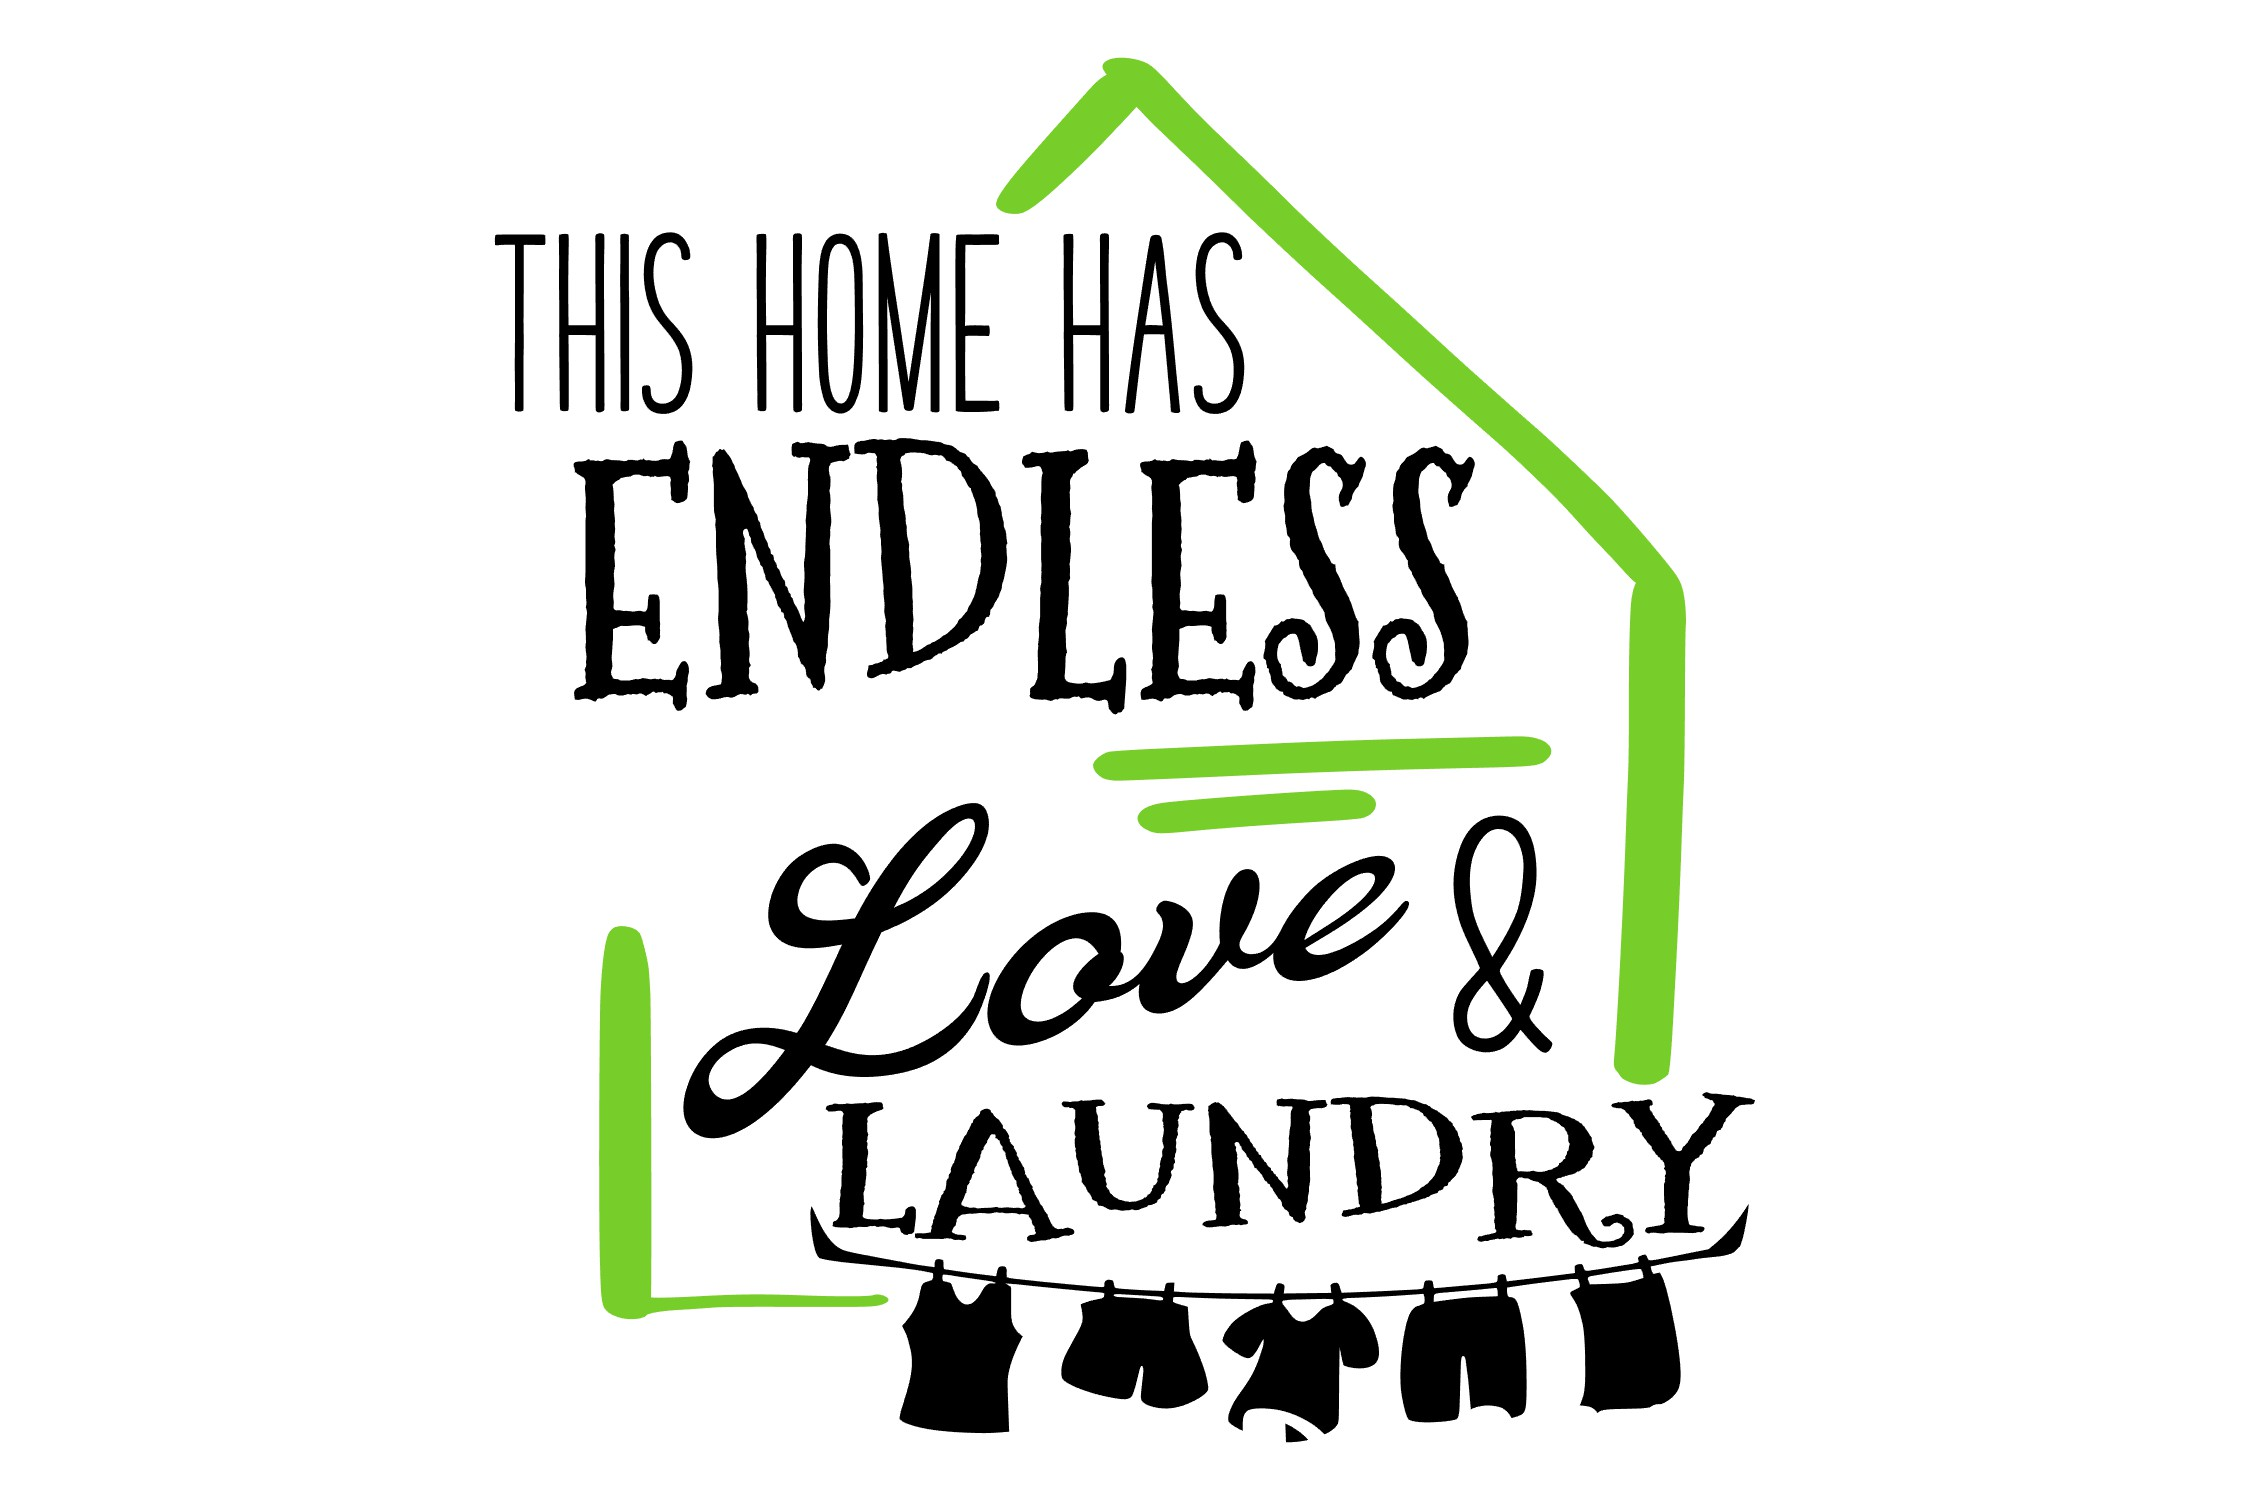 This Home Has Endless Love & Laundry SVG example image 2